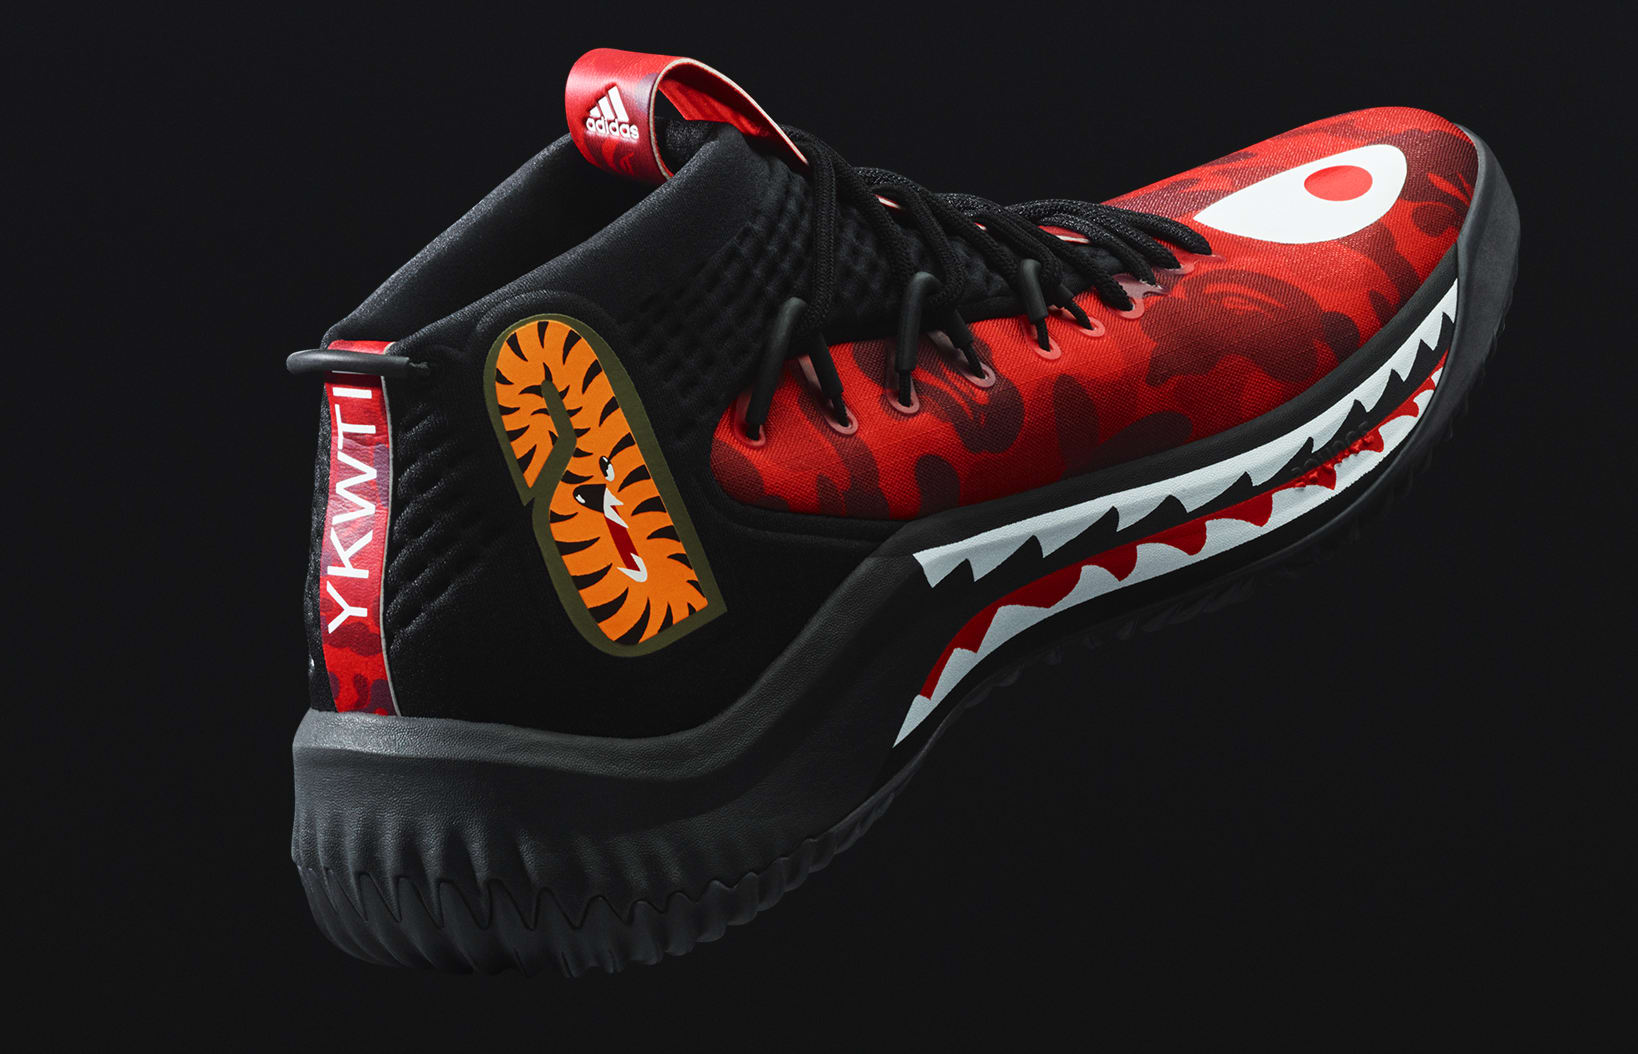 new concept a7b08 6d8bc Adidas Dame 4 x Bape Releasing in Red on Feb. 16, 2018 ...